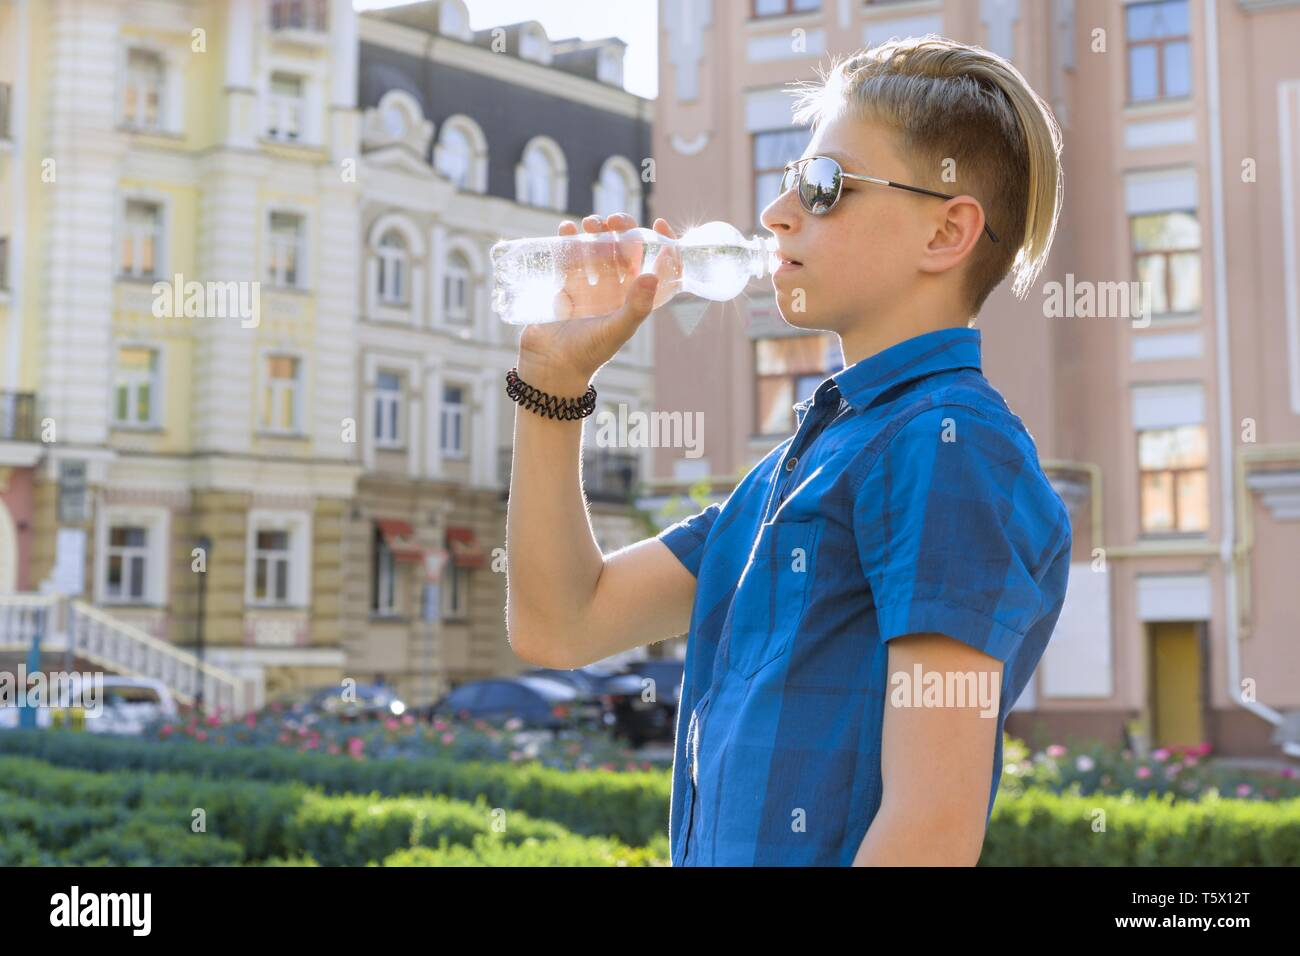 Teenager boy drinking water from bottle on sunny hot summer day in city. - Stock Image